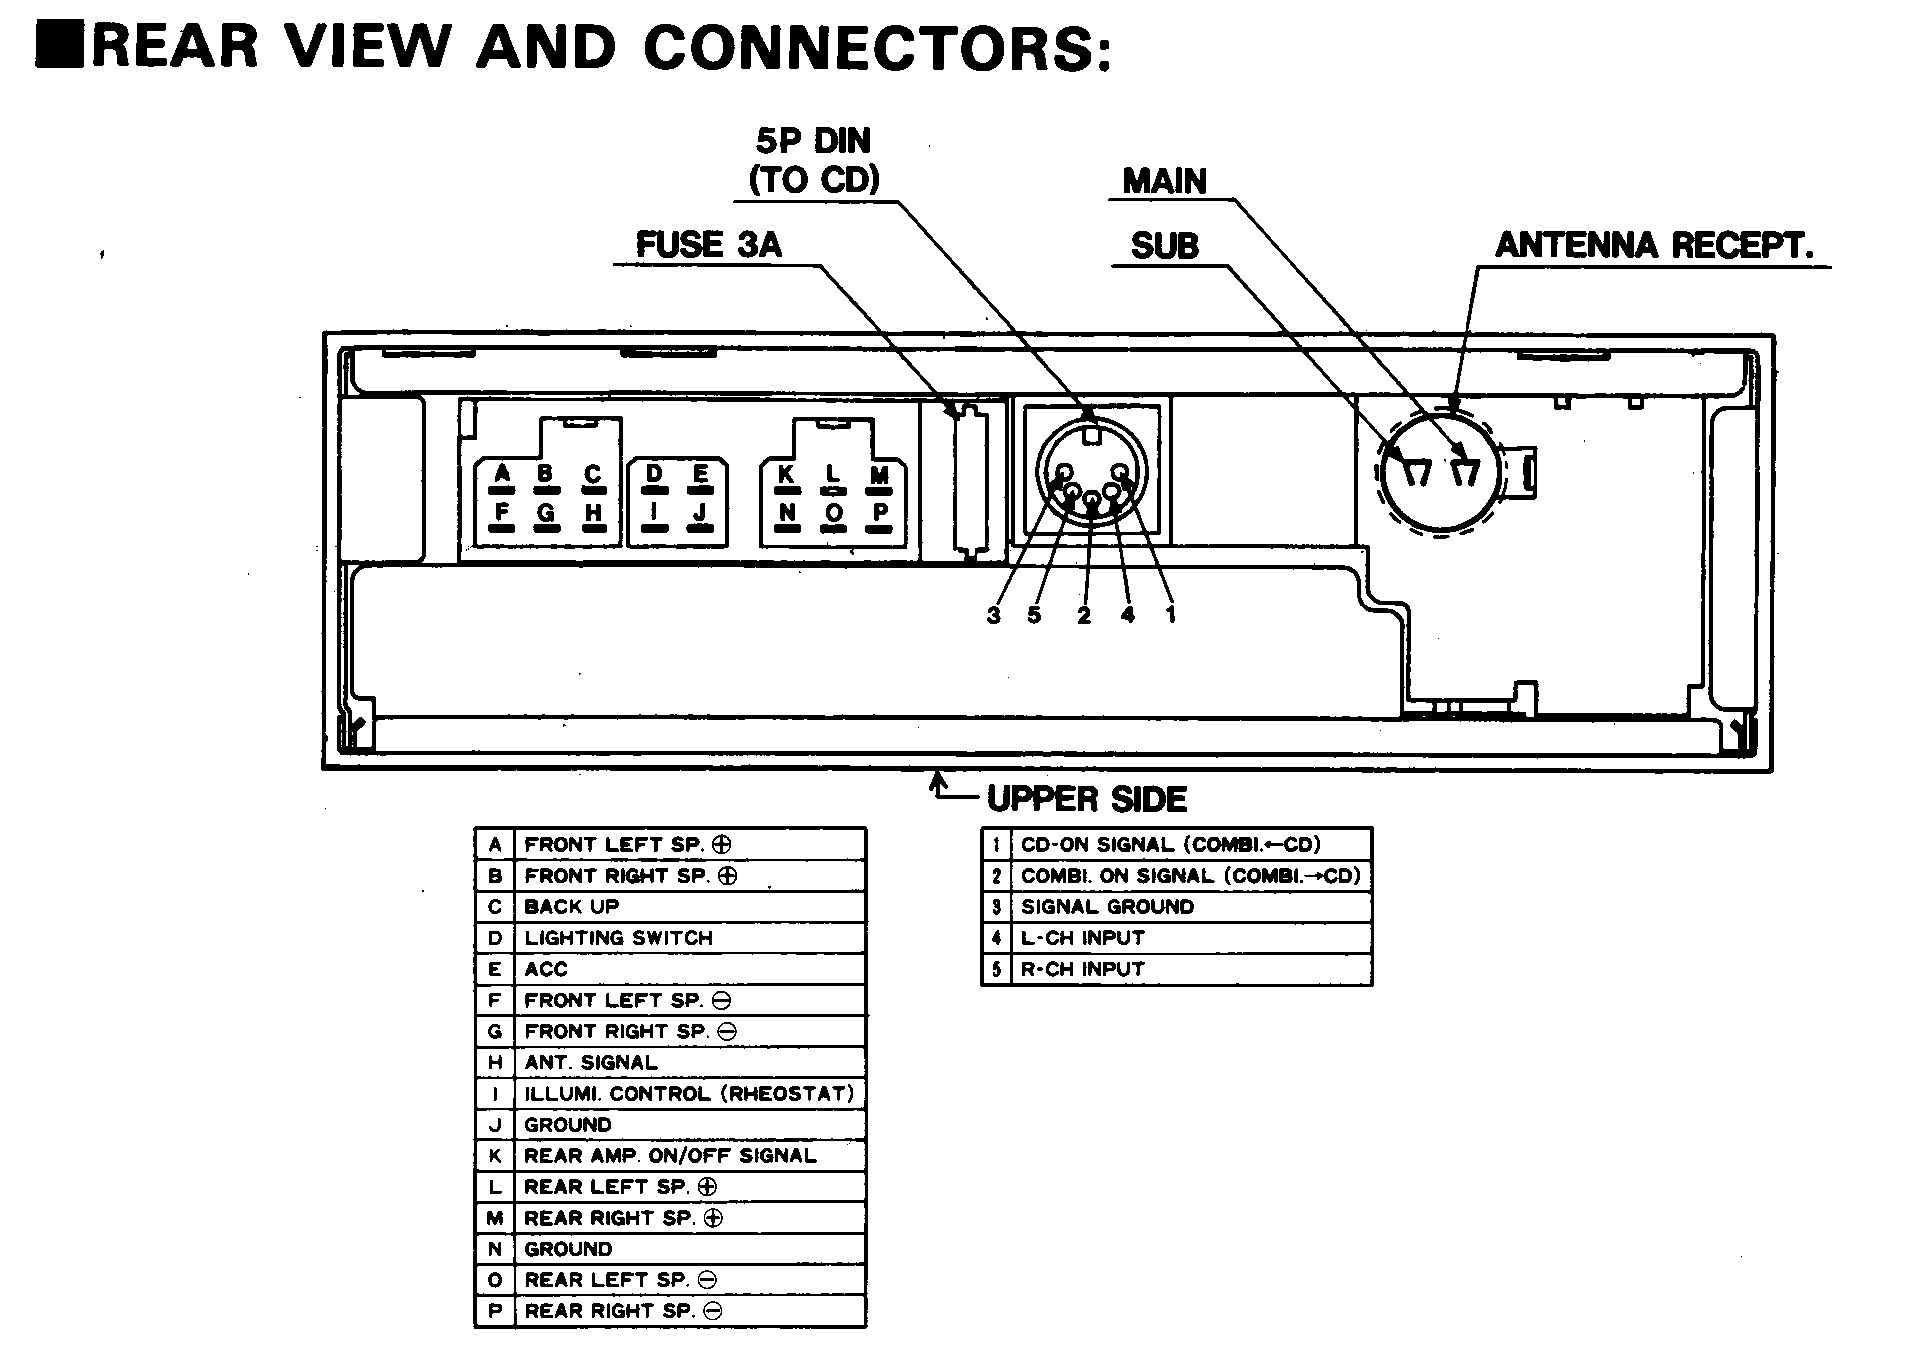 Car Sound System Setup Diagram Stereo Wiring Strong On Atlas Diagrams Audio Pioneer With Radio In Of